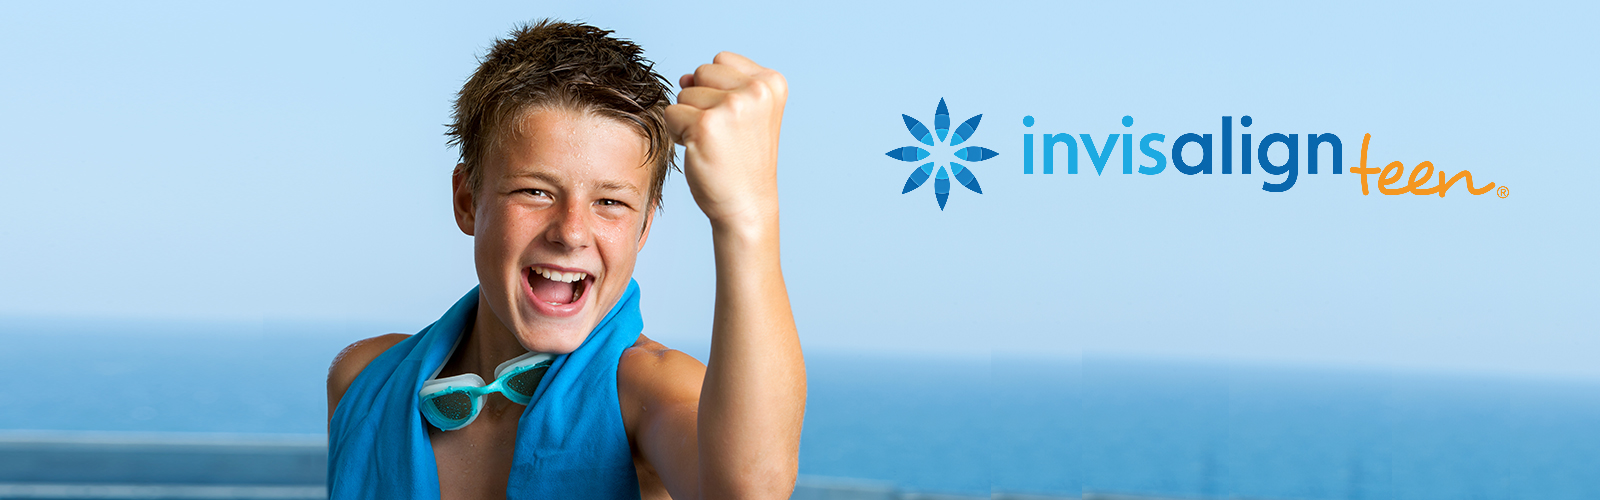 Invisalign Teen Sports